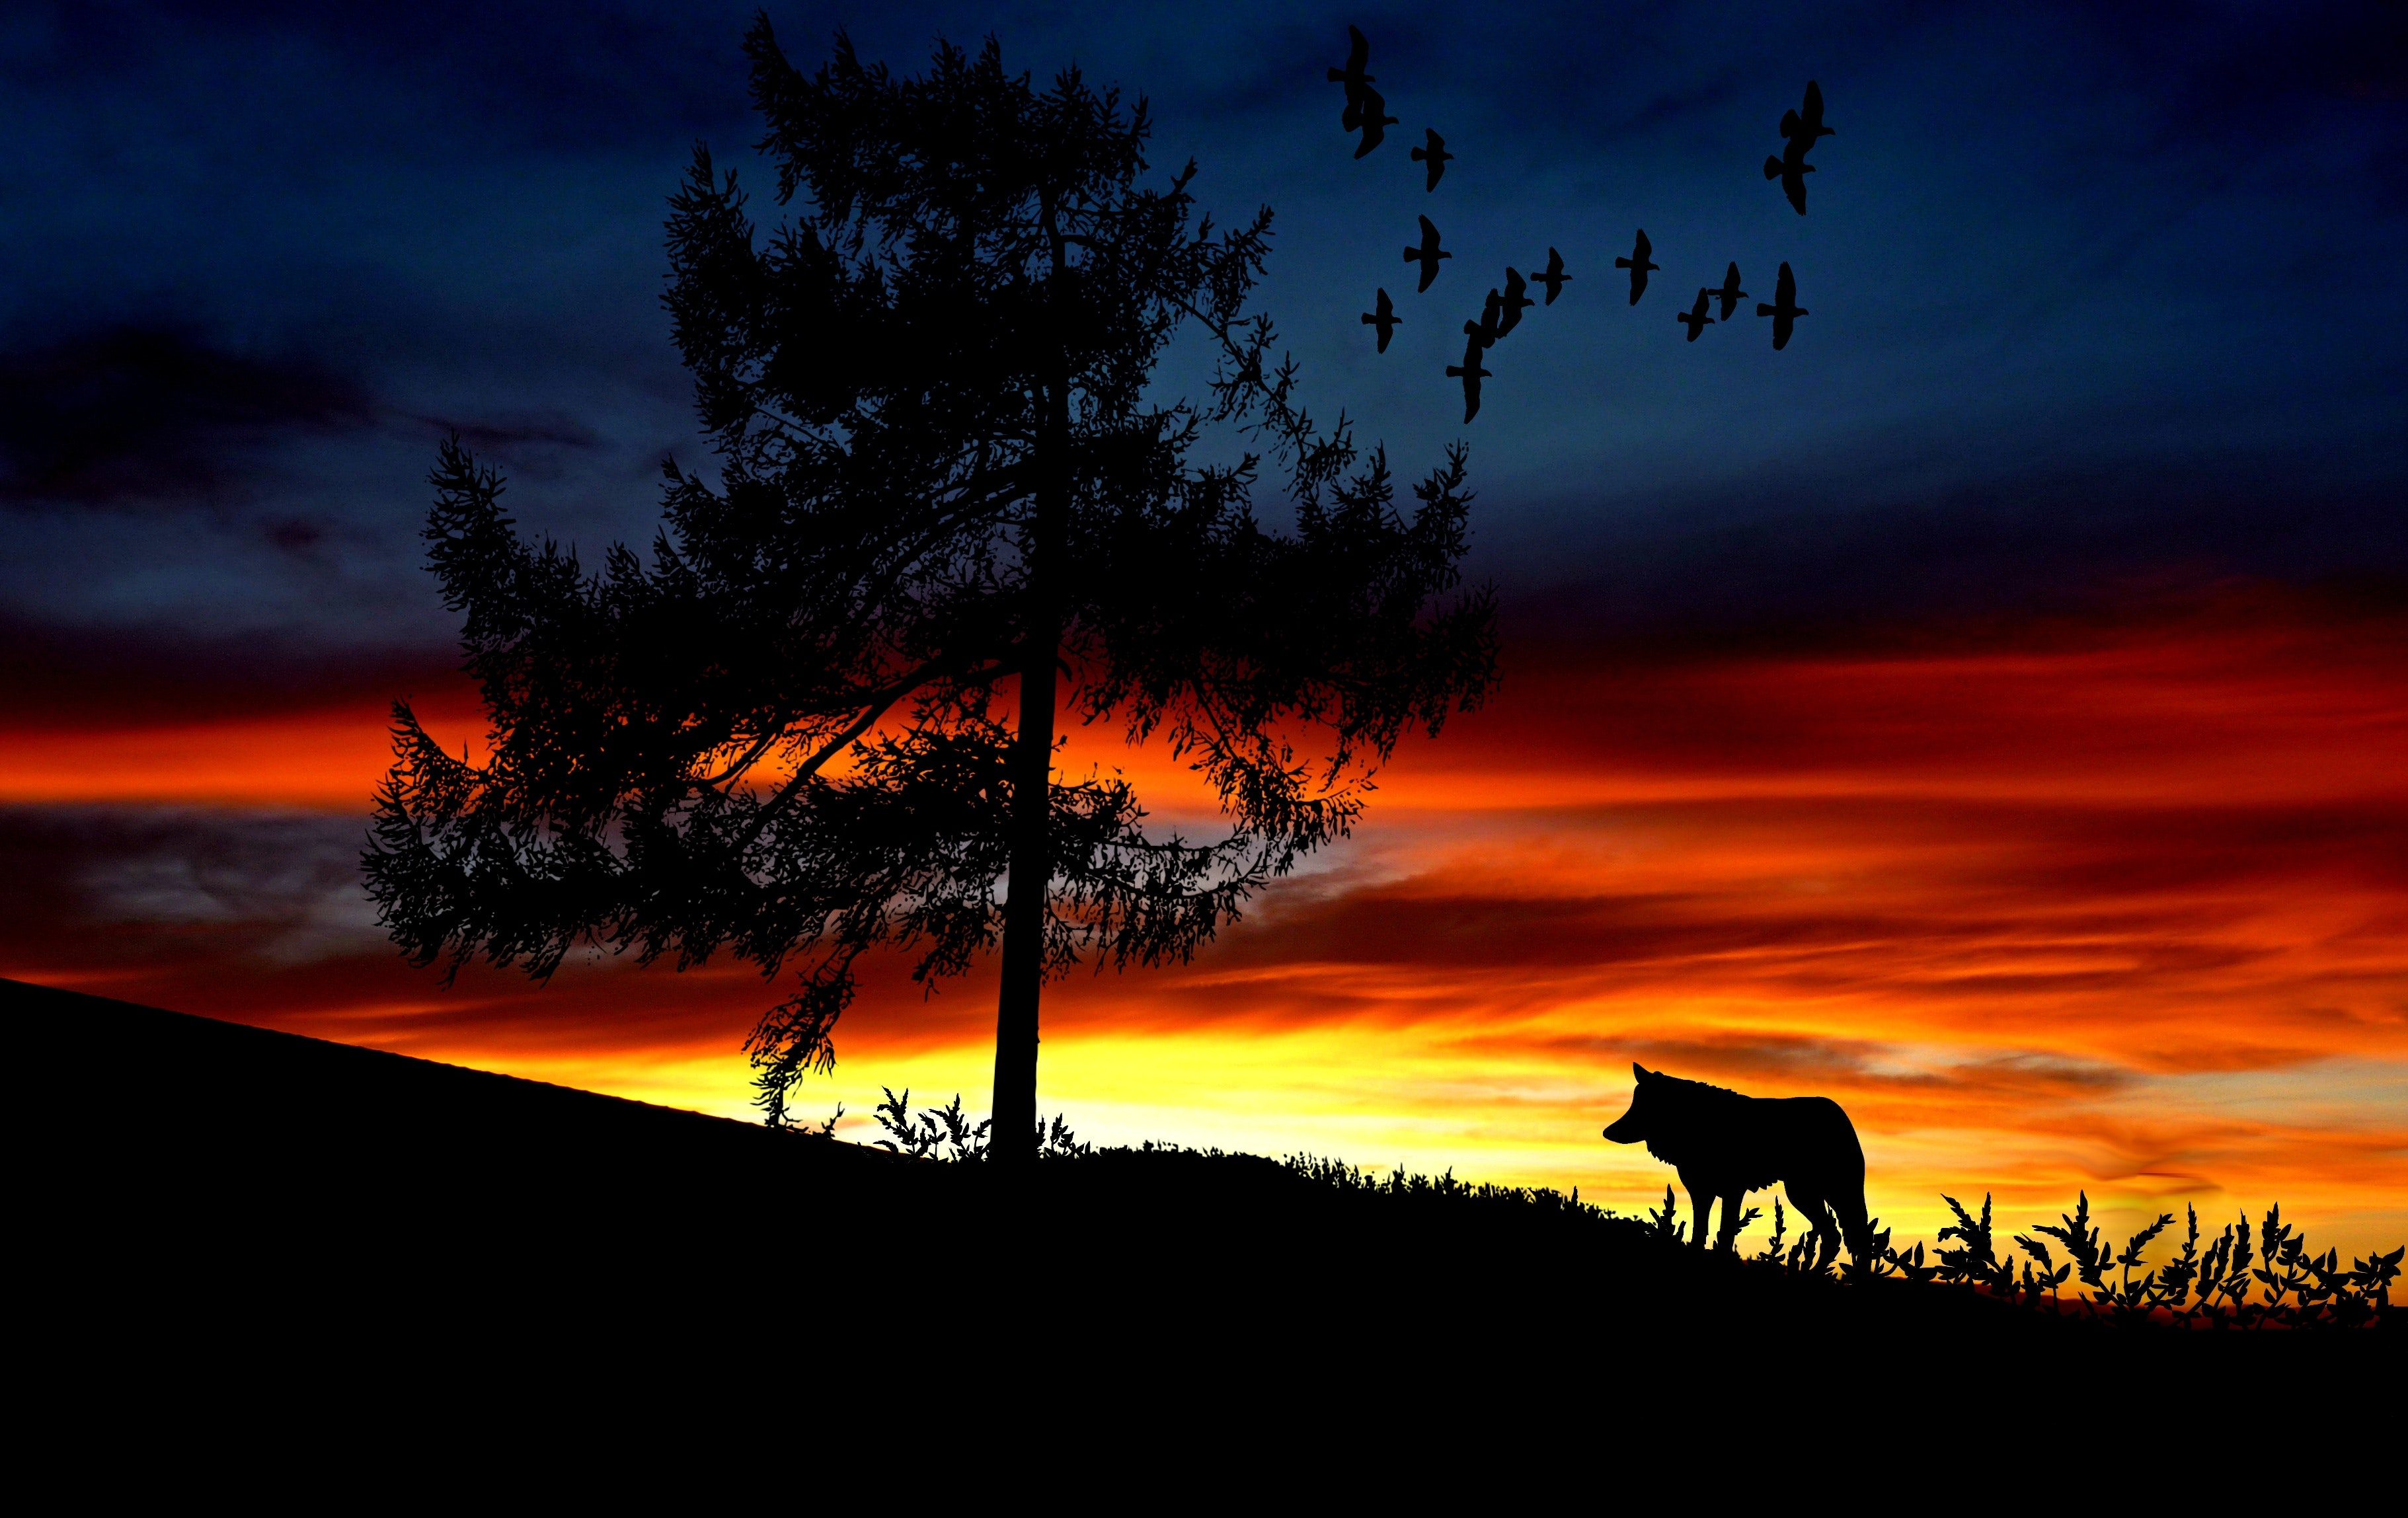 Silhouette Dog on Landscape Against Romantic Sky at Sunset, Afterglow, Landscape, Tree, Sunset, HQ Photo